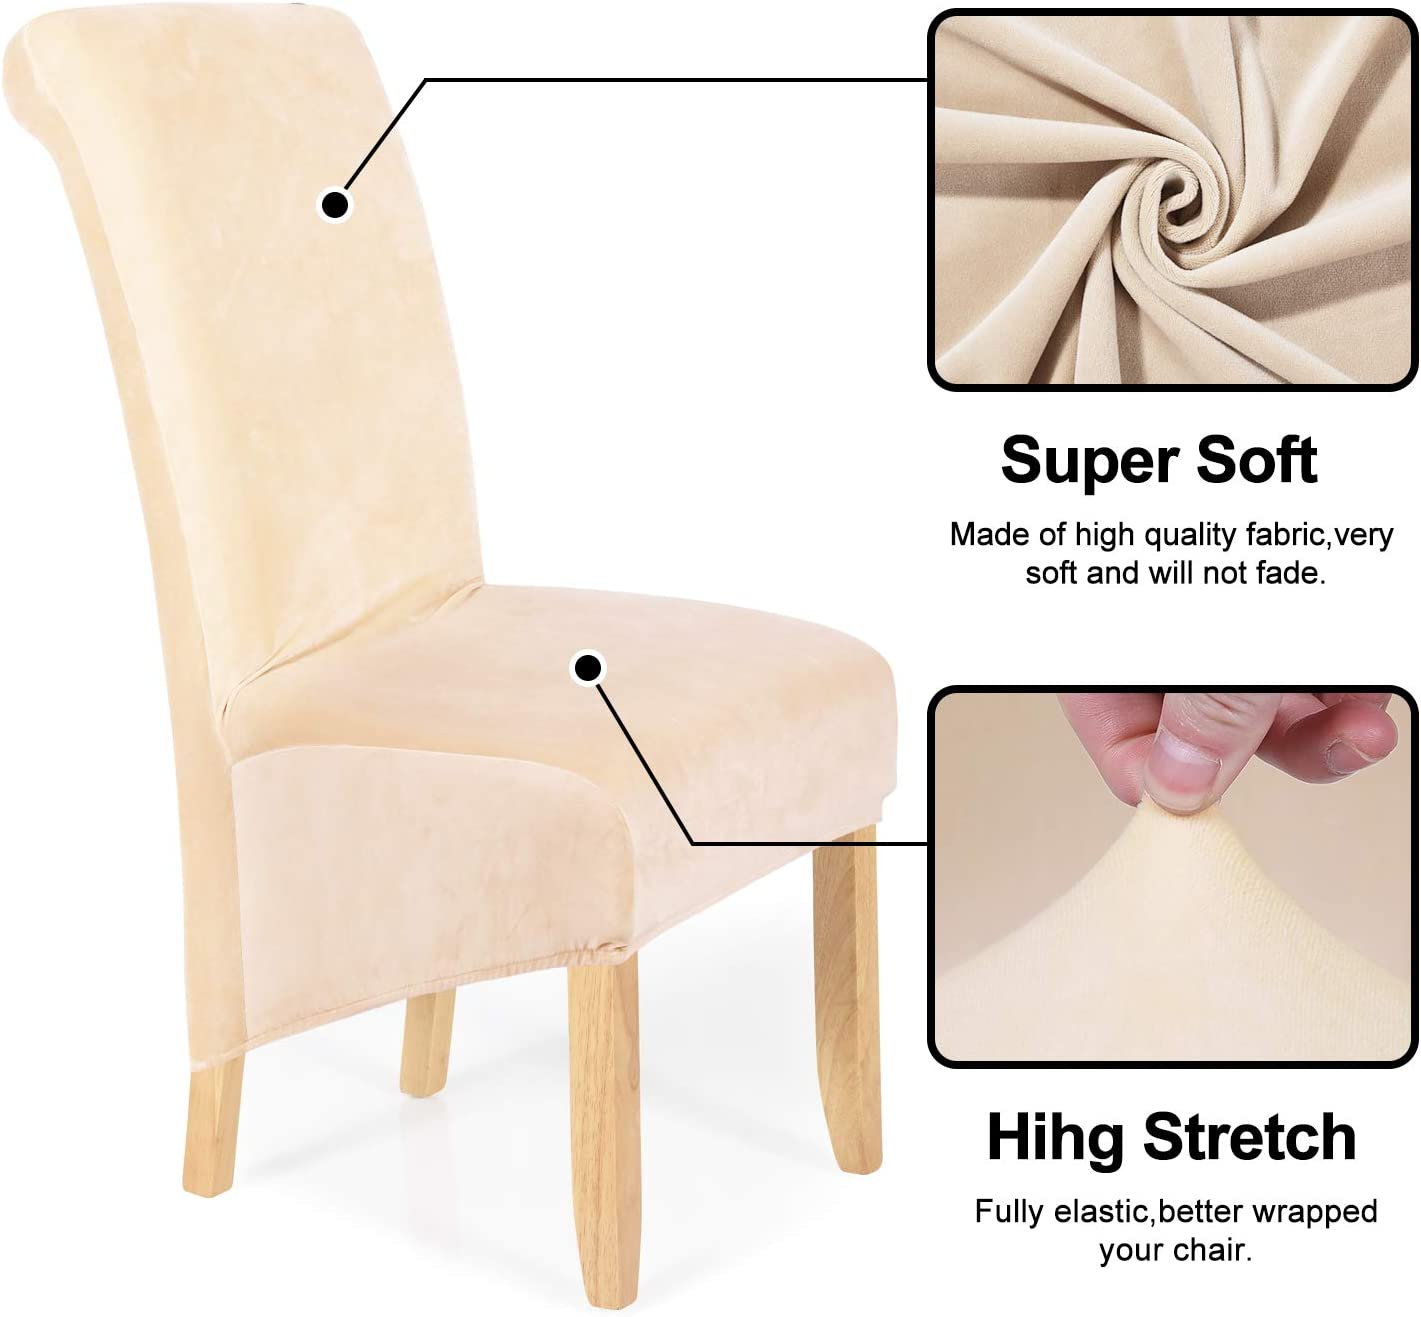 Removable Washable Large Soft Dining Chair Slipcovers for Kitchen Home Restaurant Set of 4, Black smiry Stretch Velvet Dining Chair Covers